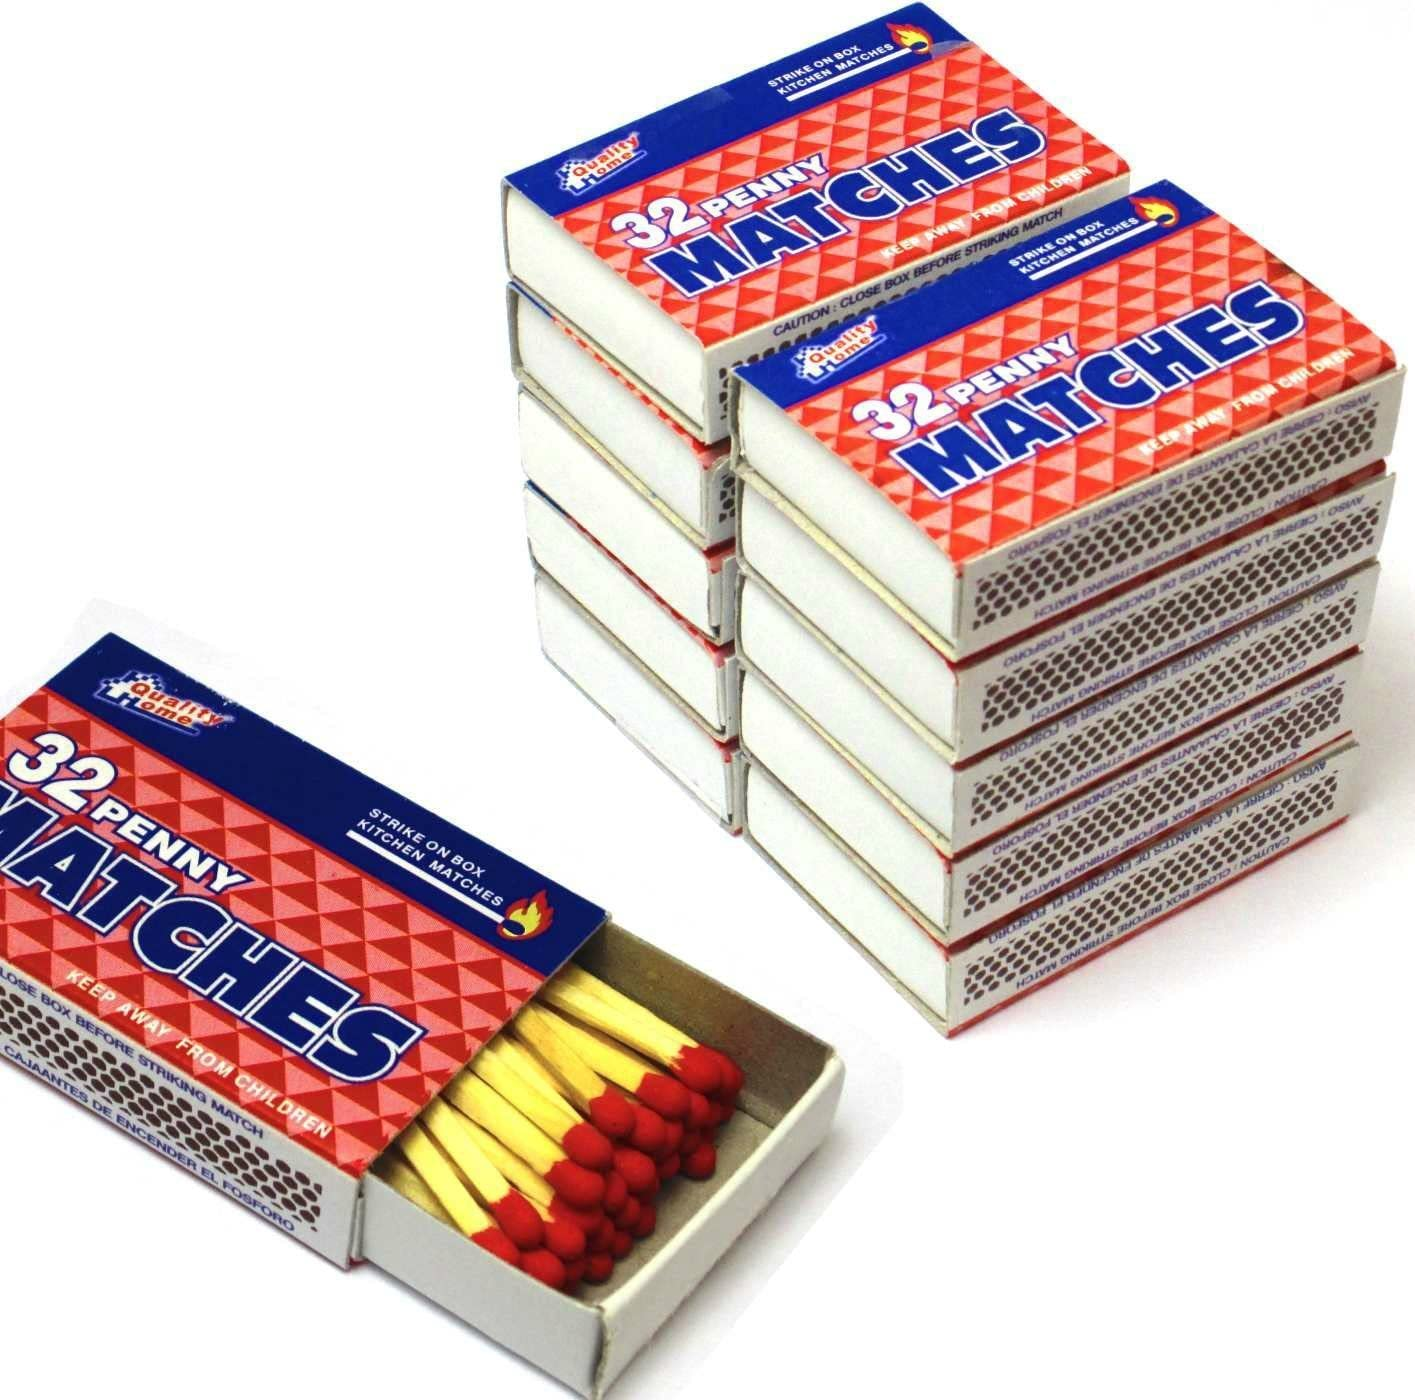 Quality Home Wooden Kitchen Matches, Strike On Box, 32 Matches Per Box (10 Count)